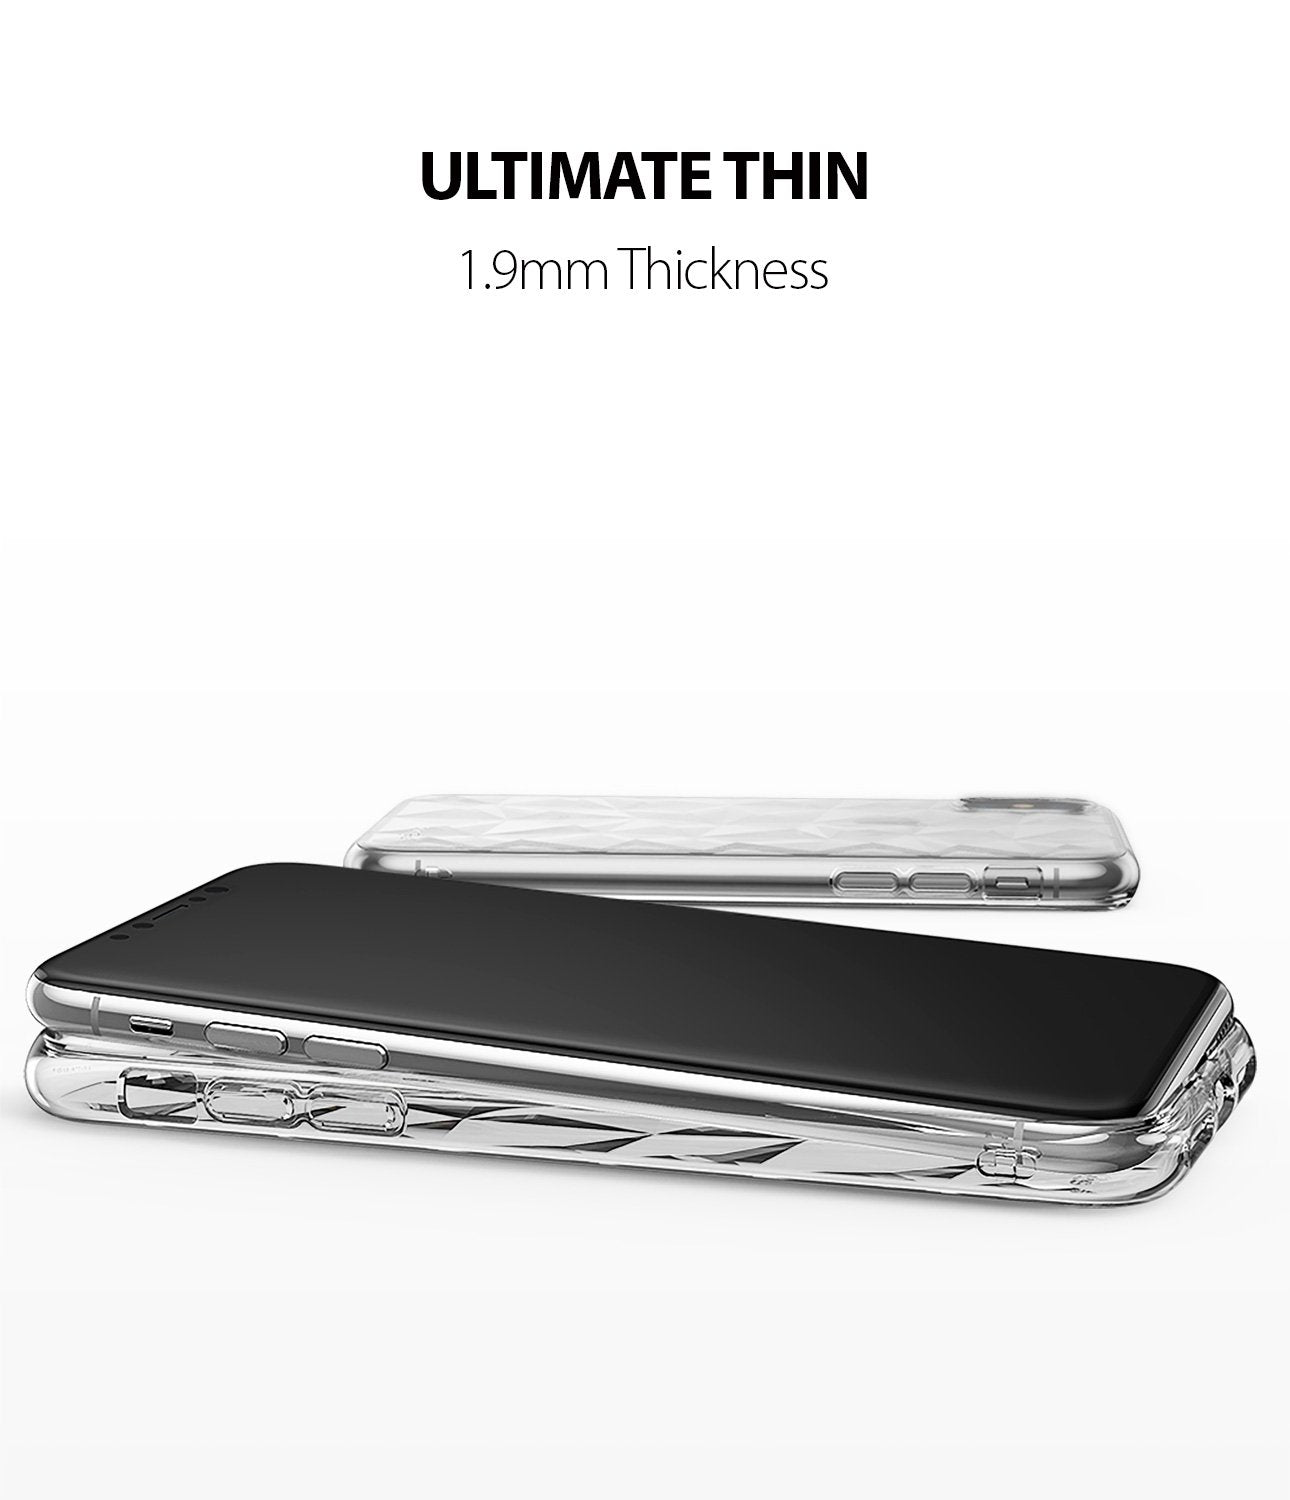 ringke air prism for iphone xs case cover ultimate thin